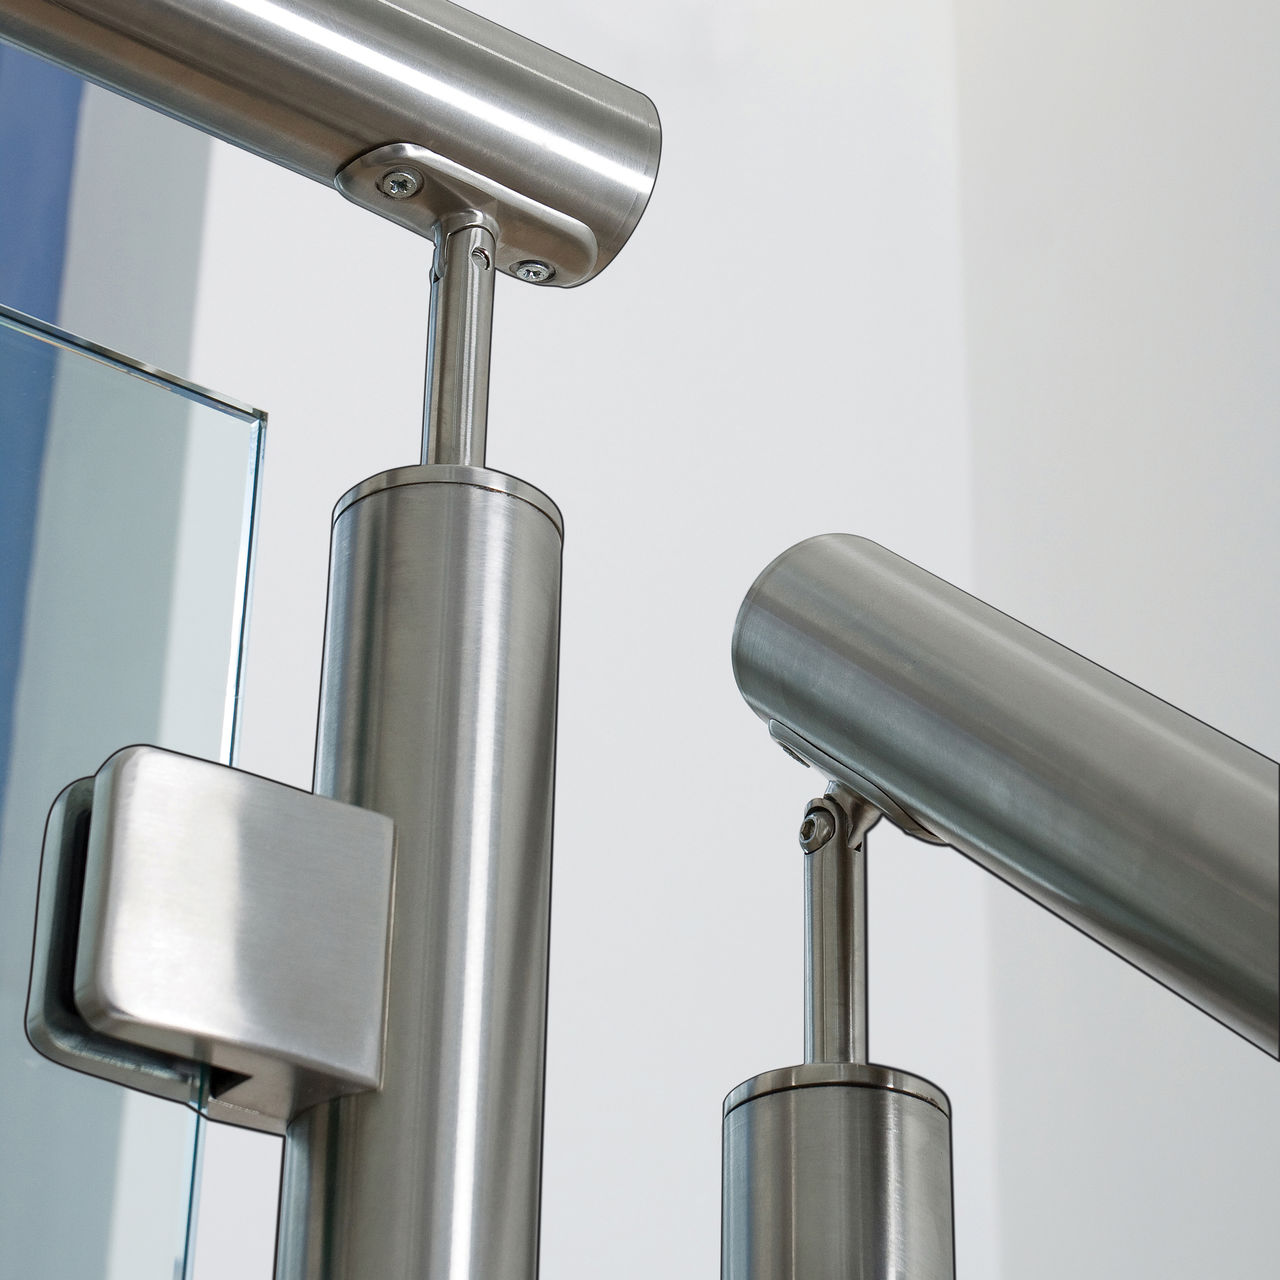 Railing solutions & Glass accessories